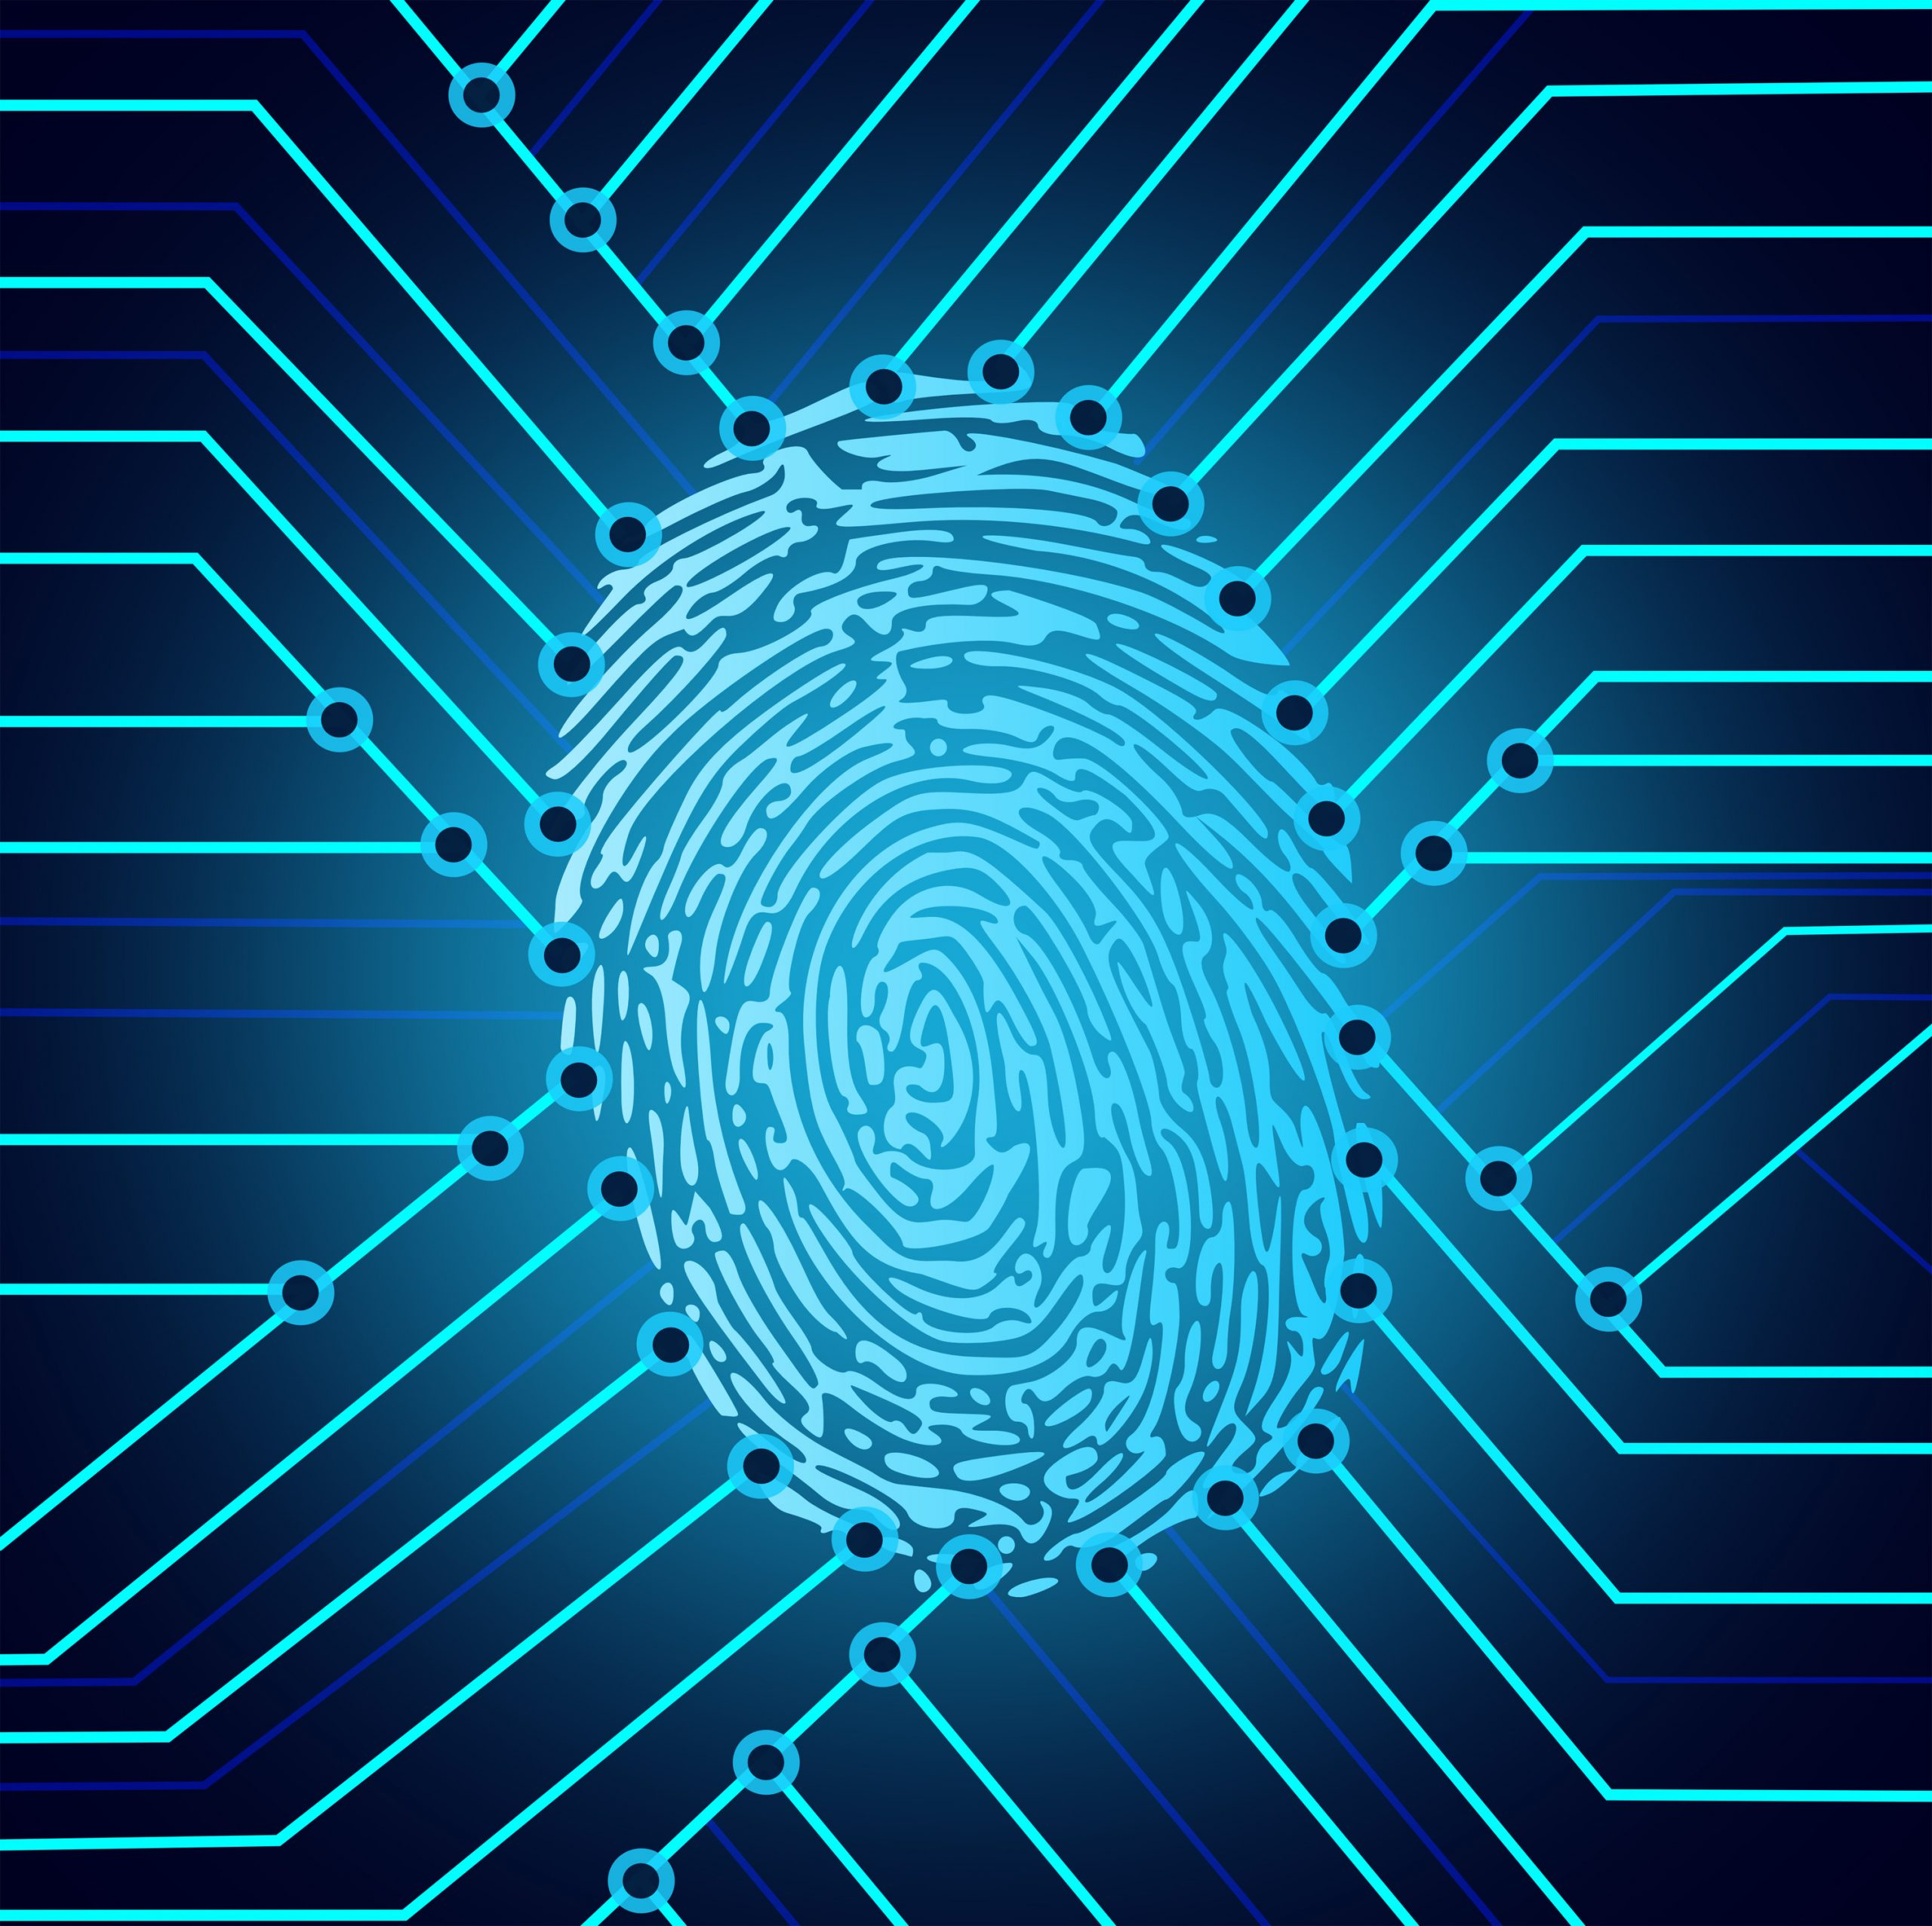 Biometric fingerprint identification system electronics